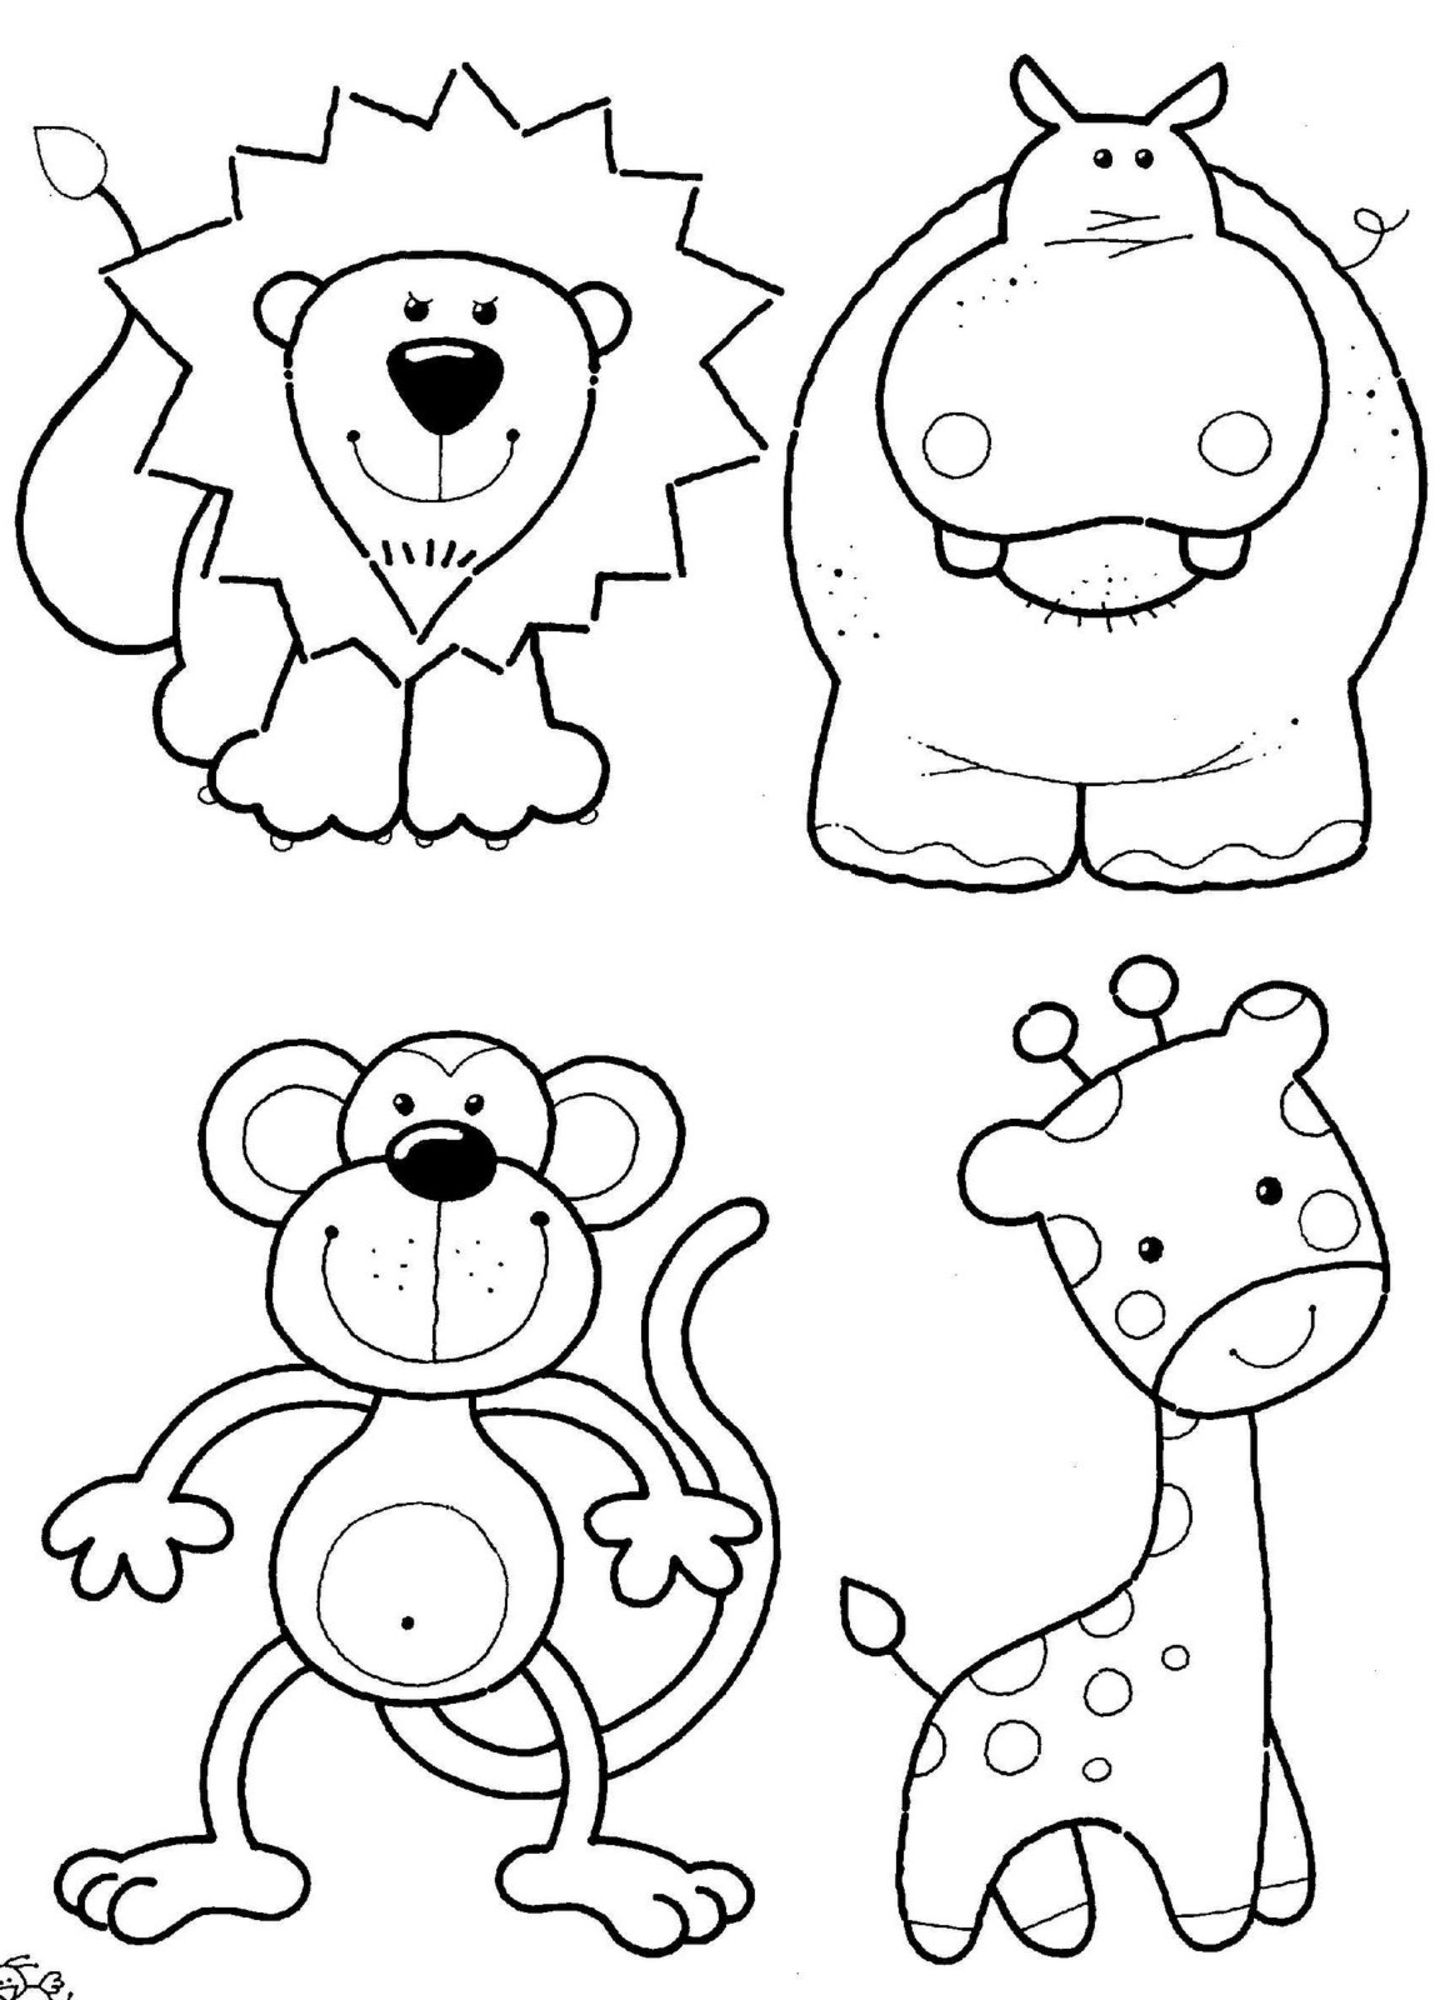 Free coloring pages wild animals - Nice Colored Pictures Of Animals Free Download